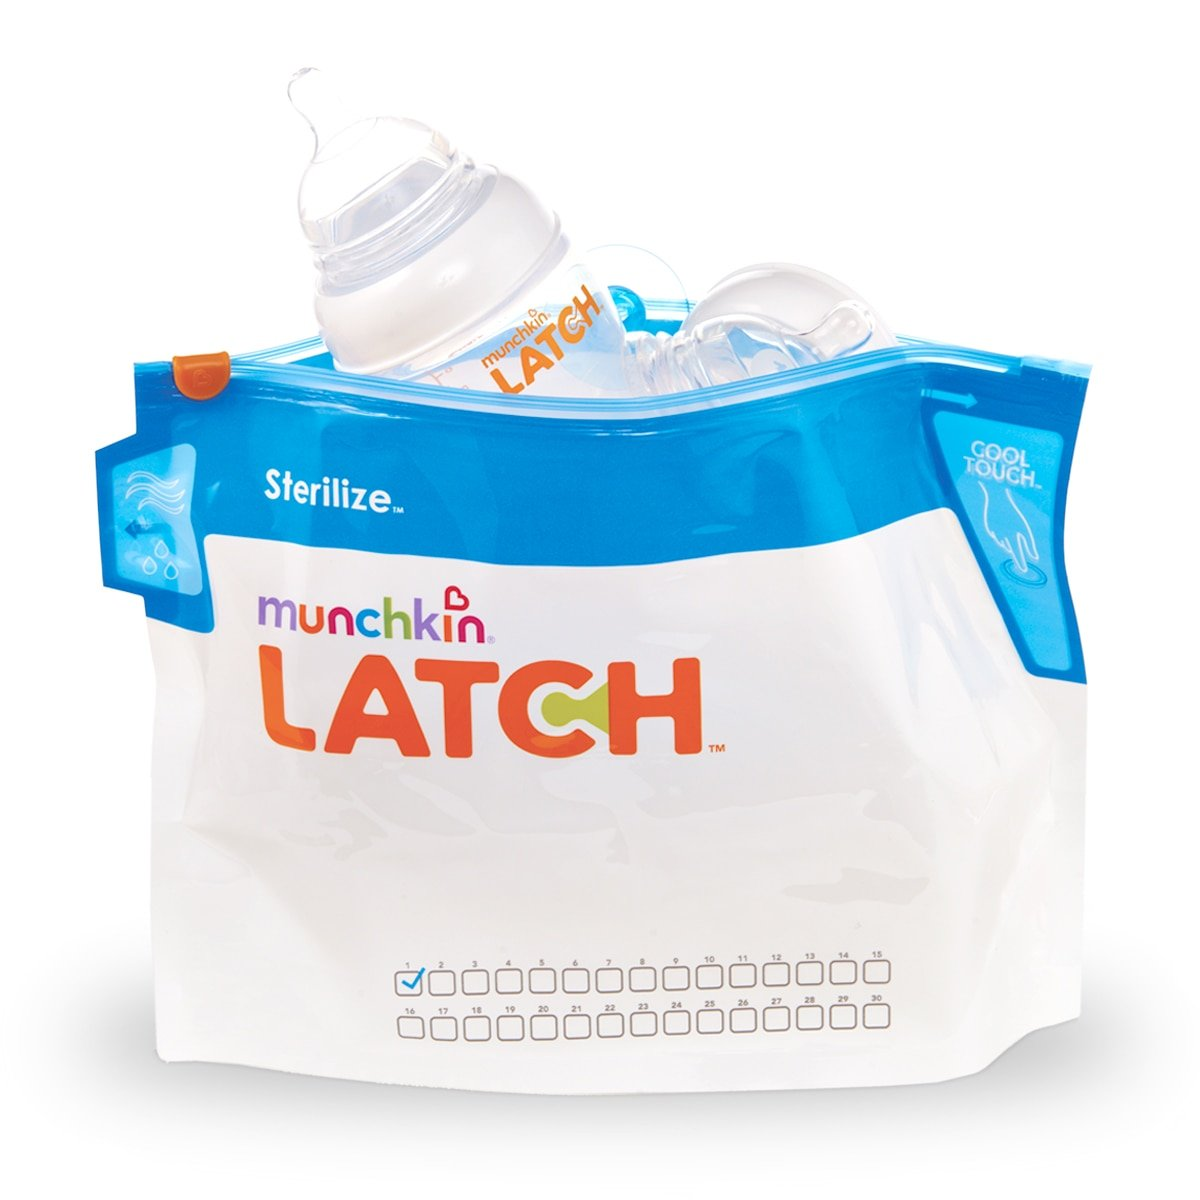 LATCH Munchkin Sterilizer Bags-6 Piece White/Blue 011741